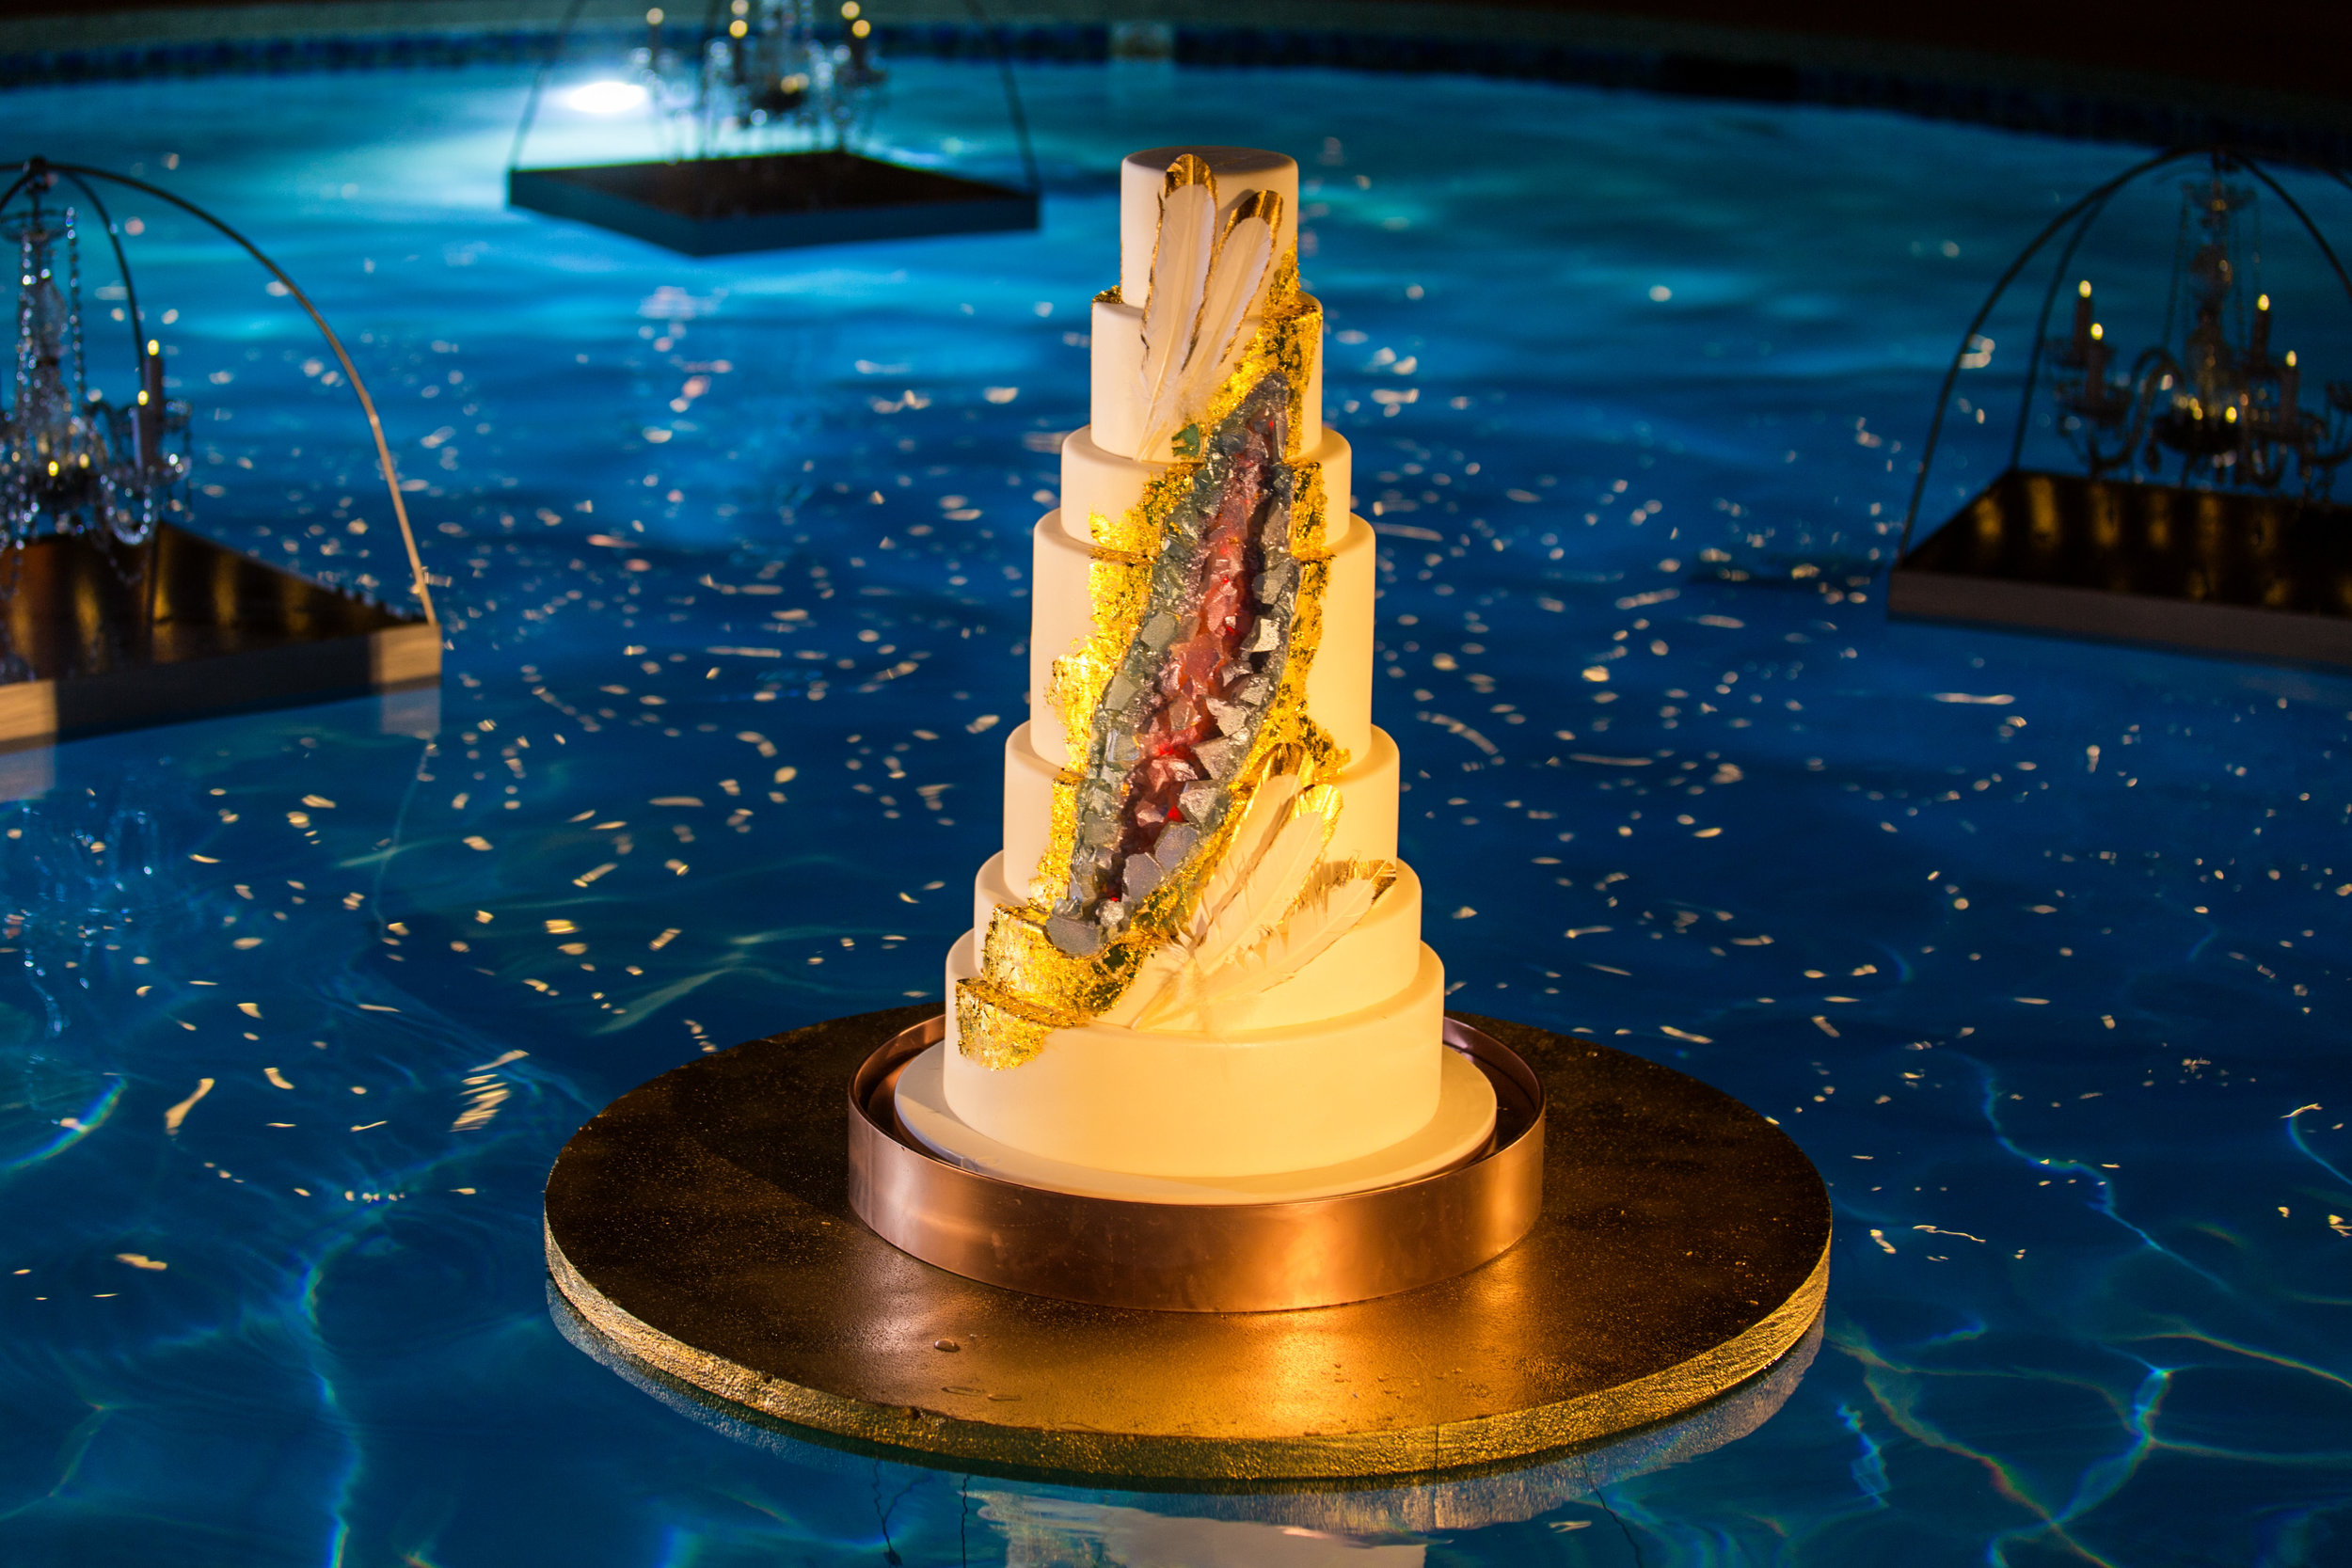 Floating geode wedding cake.Jewel toned wedding centerpieces with gold accents.Wedding Planning by  Andrea Eppolito Events  · Photography by  Shandro Photo   · Wedding Venue  Four Seasons Las Vegas  · Floral and Decor by  Destination by Design  · Cake by  Four Seasons Las Vegas  · Chandeliers and Lighting by  LED Unplugged  · Dress by  Berta  and Menu by Alligator Soup